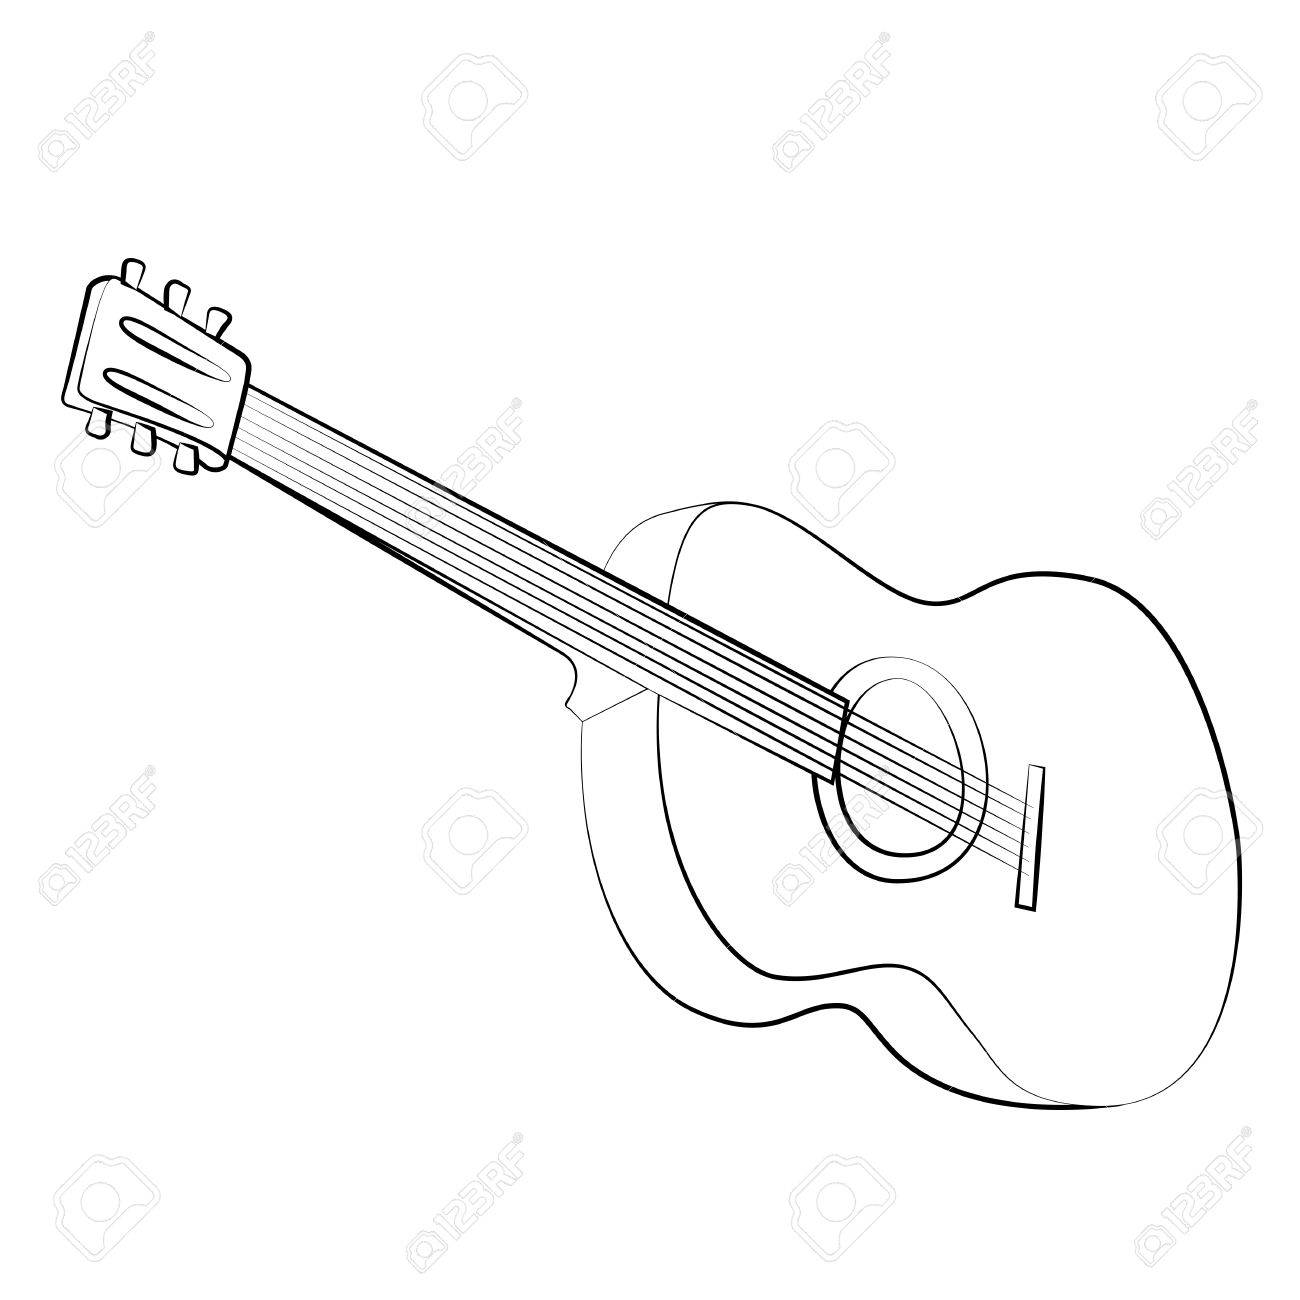 Guitar neck drawing at getdrawings free for personal use guitar neck drawing 8 guitar neck drawing